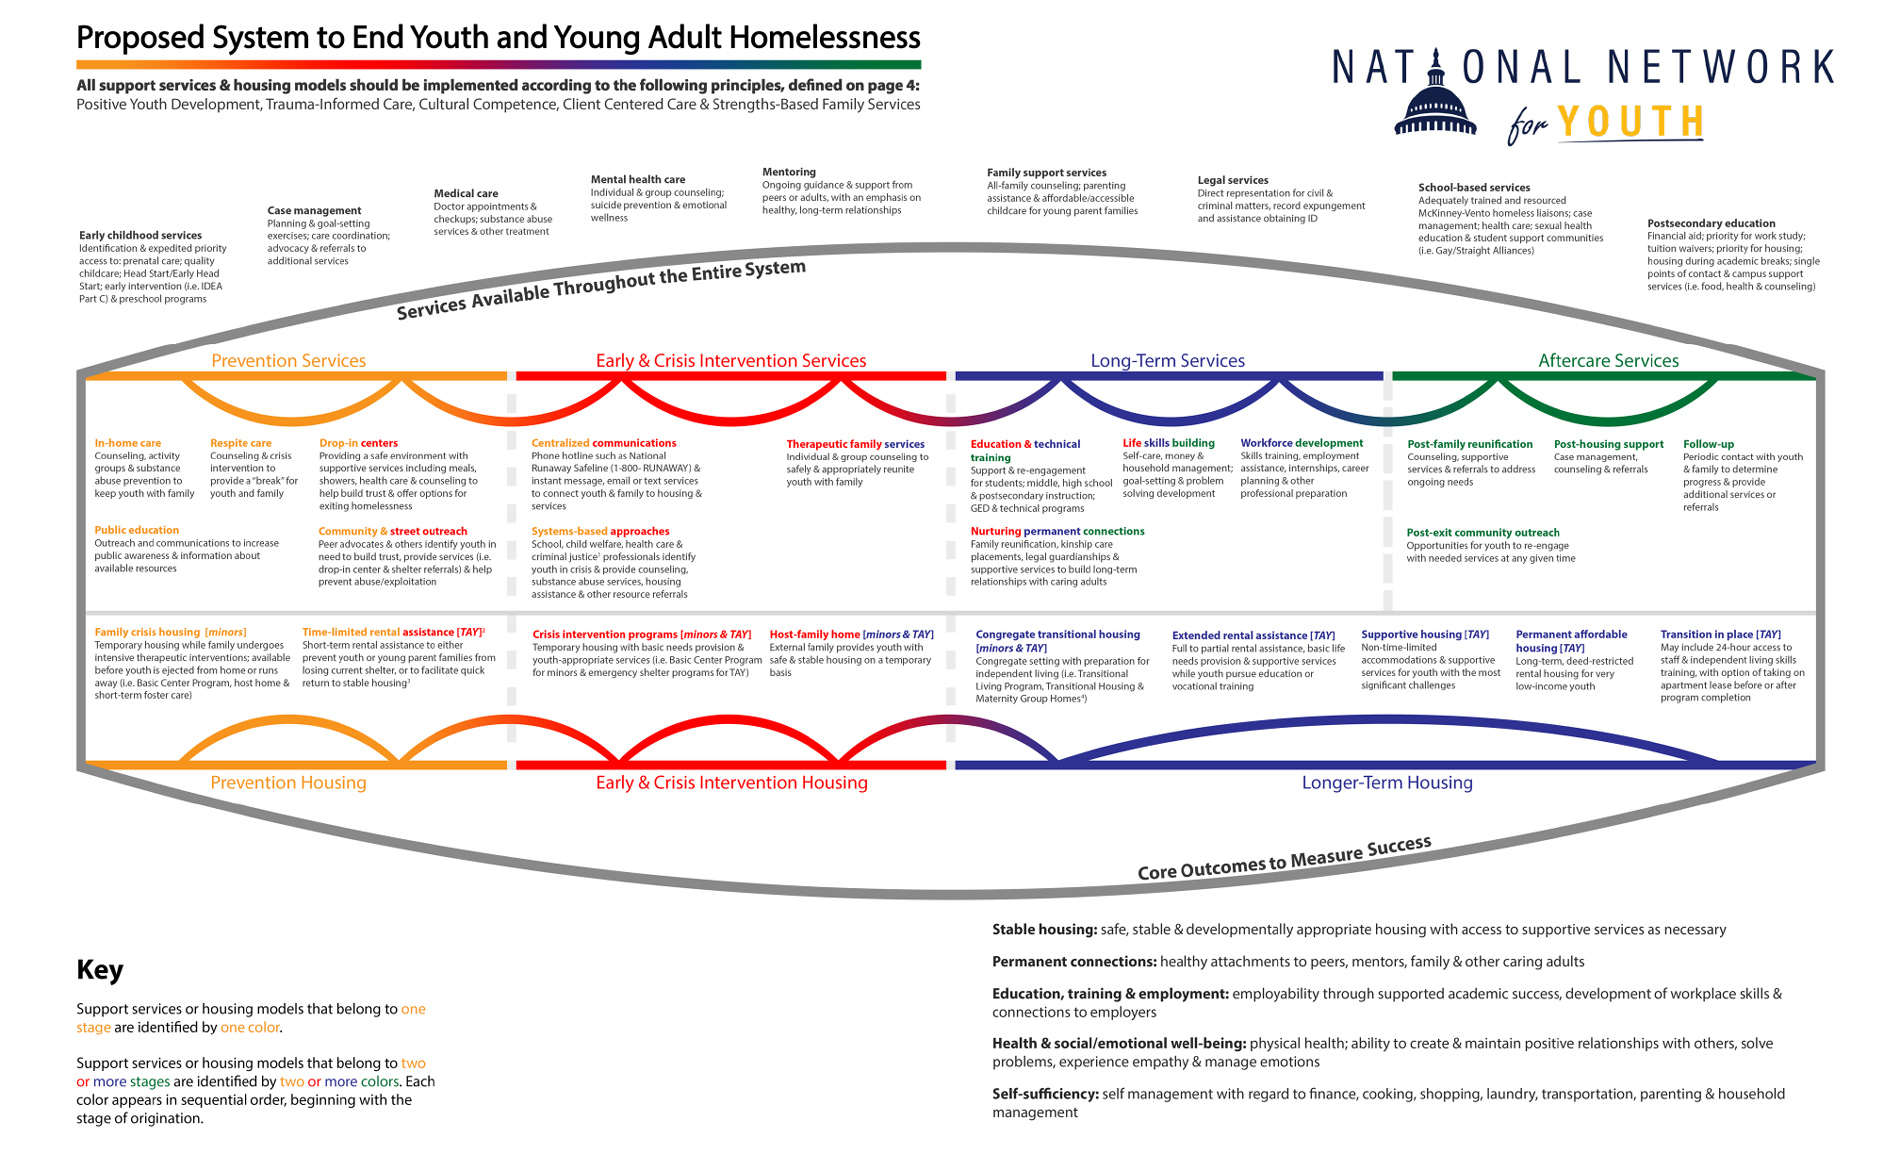 Proposed System to End Youth and Young Adult Homelessness